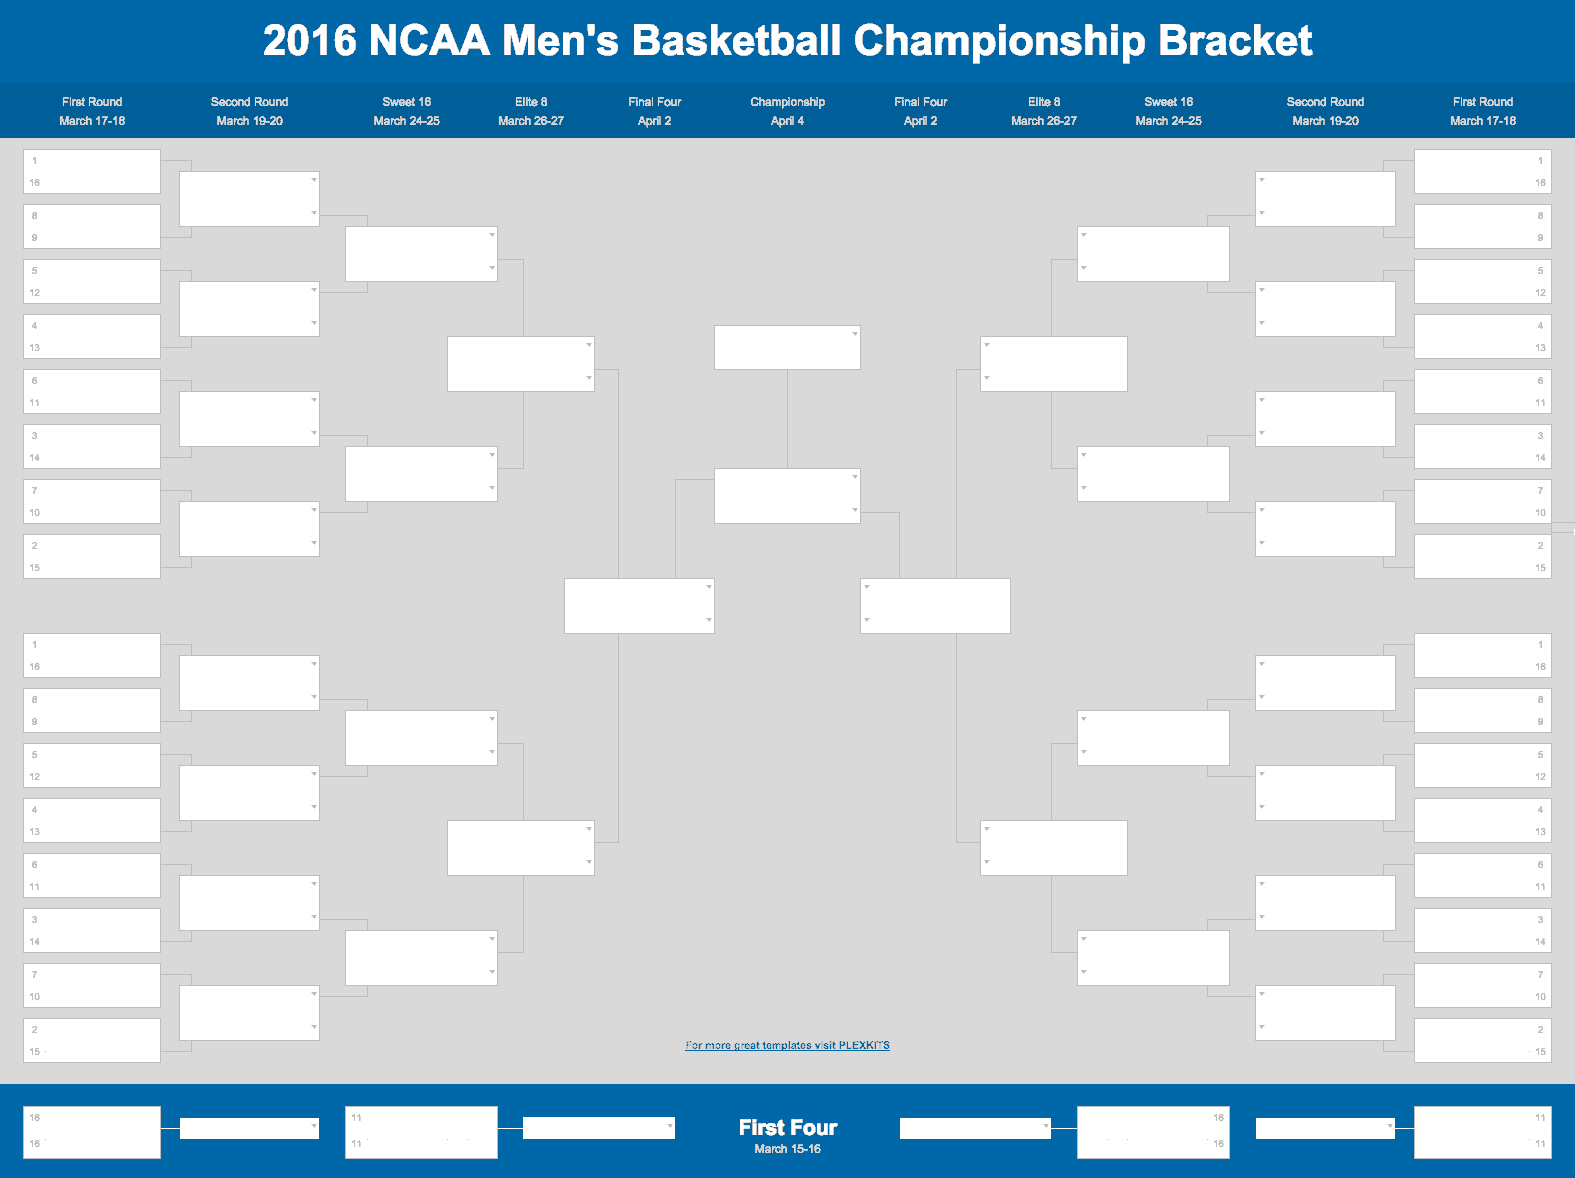 Tournament Spreadsheet In 2018 March Madness Bracket Excel And Google Sheet